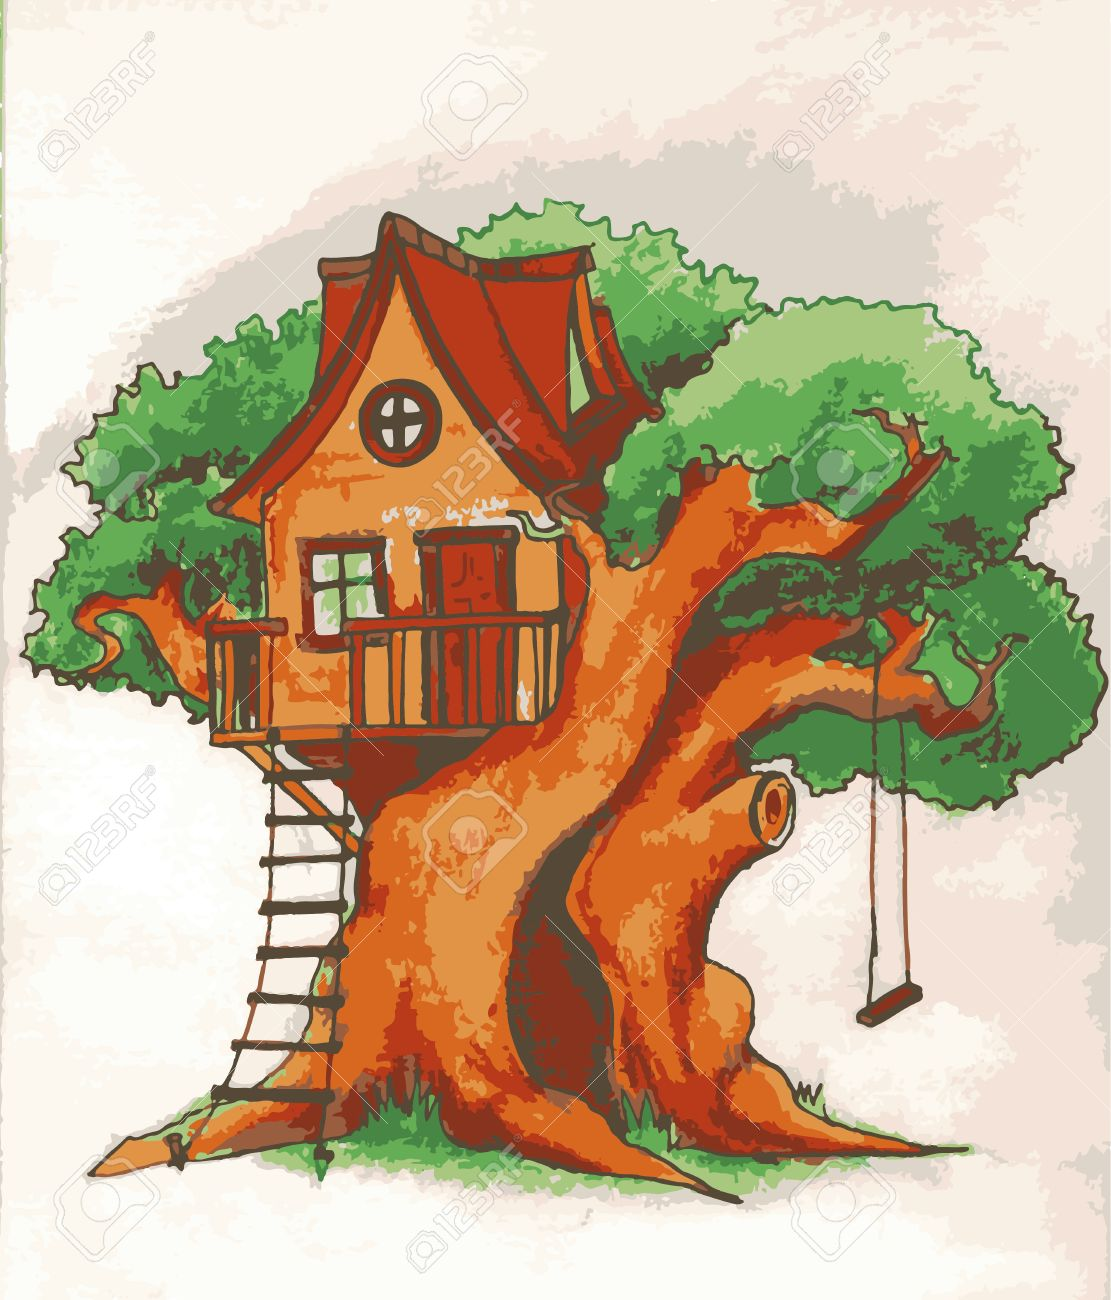 Picture of: Tree House House On Tree For Kids Children Playground With Royalty Free Cliparts Vectors And Stock Illustration Image 68501001